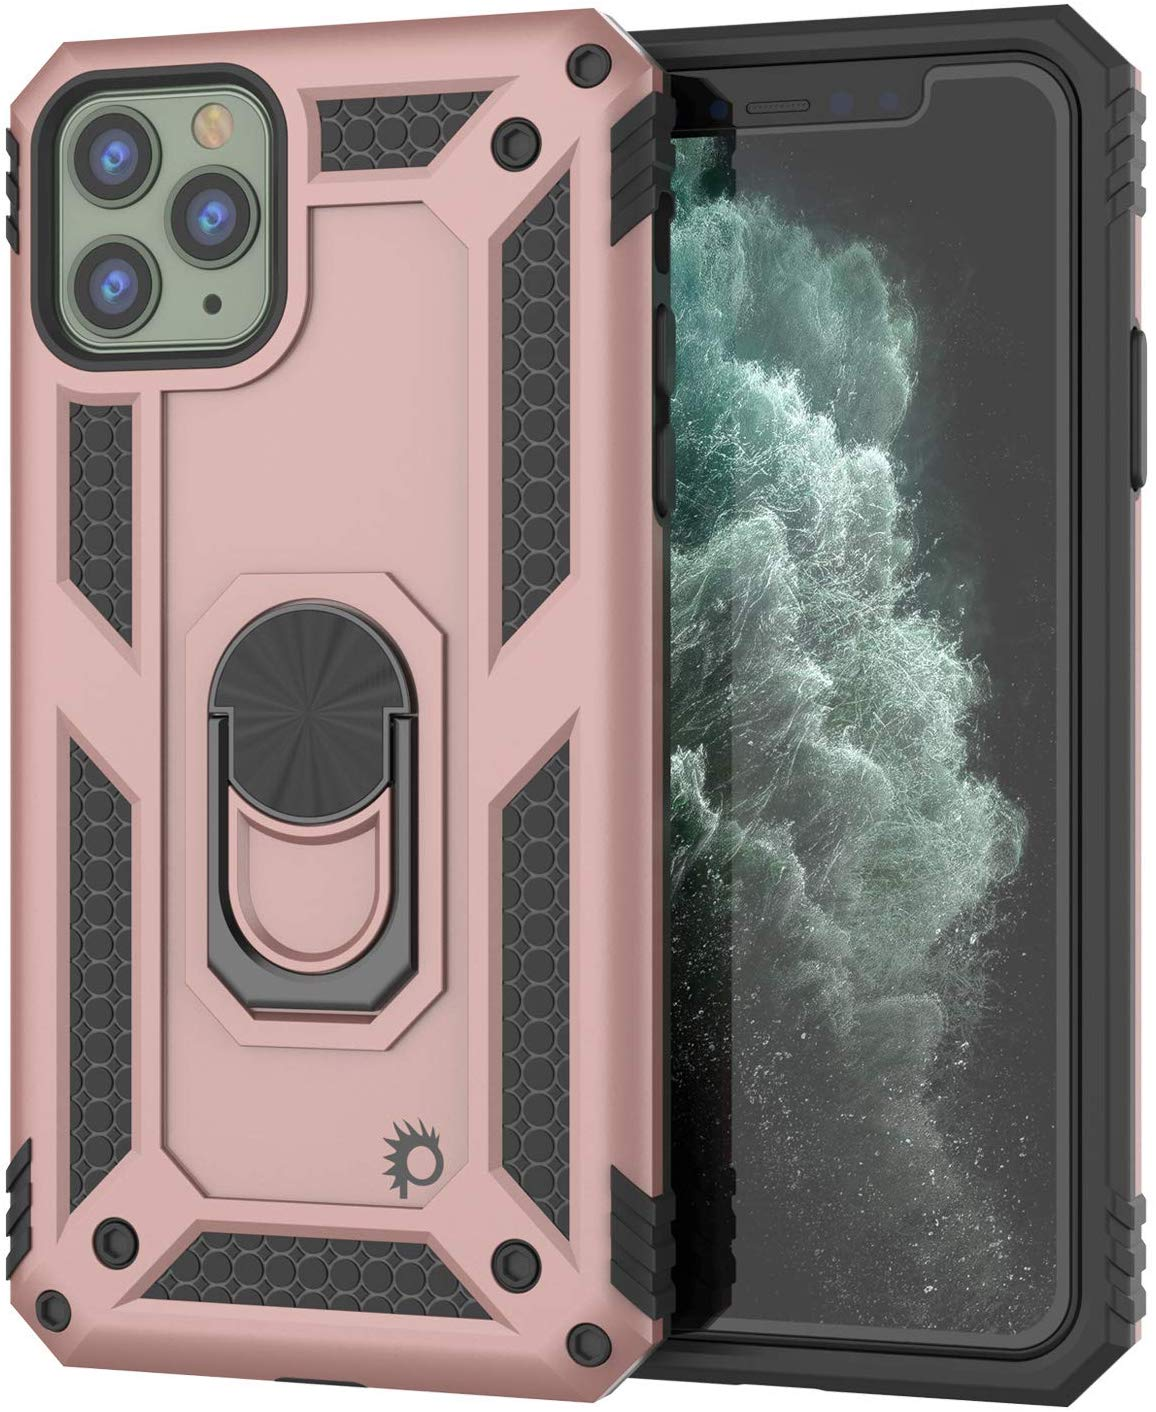 Apple iPhone 11 Pro Max Punkcase Armor Military Case Rose-Gold